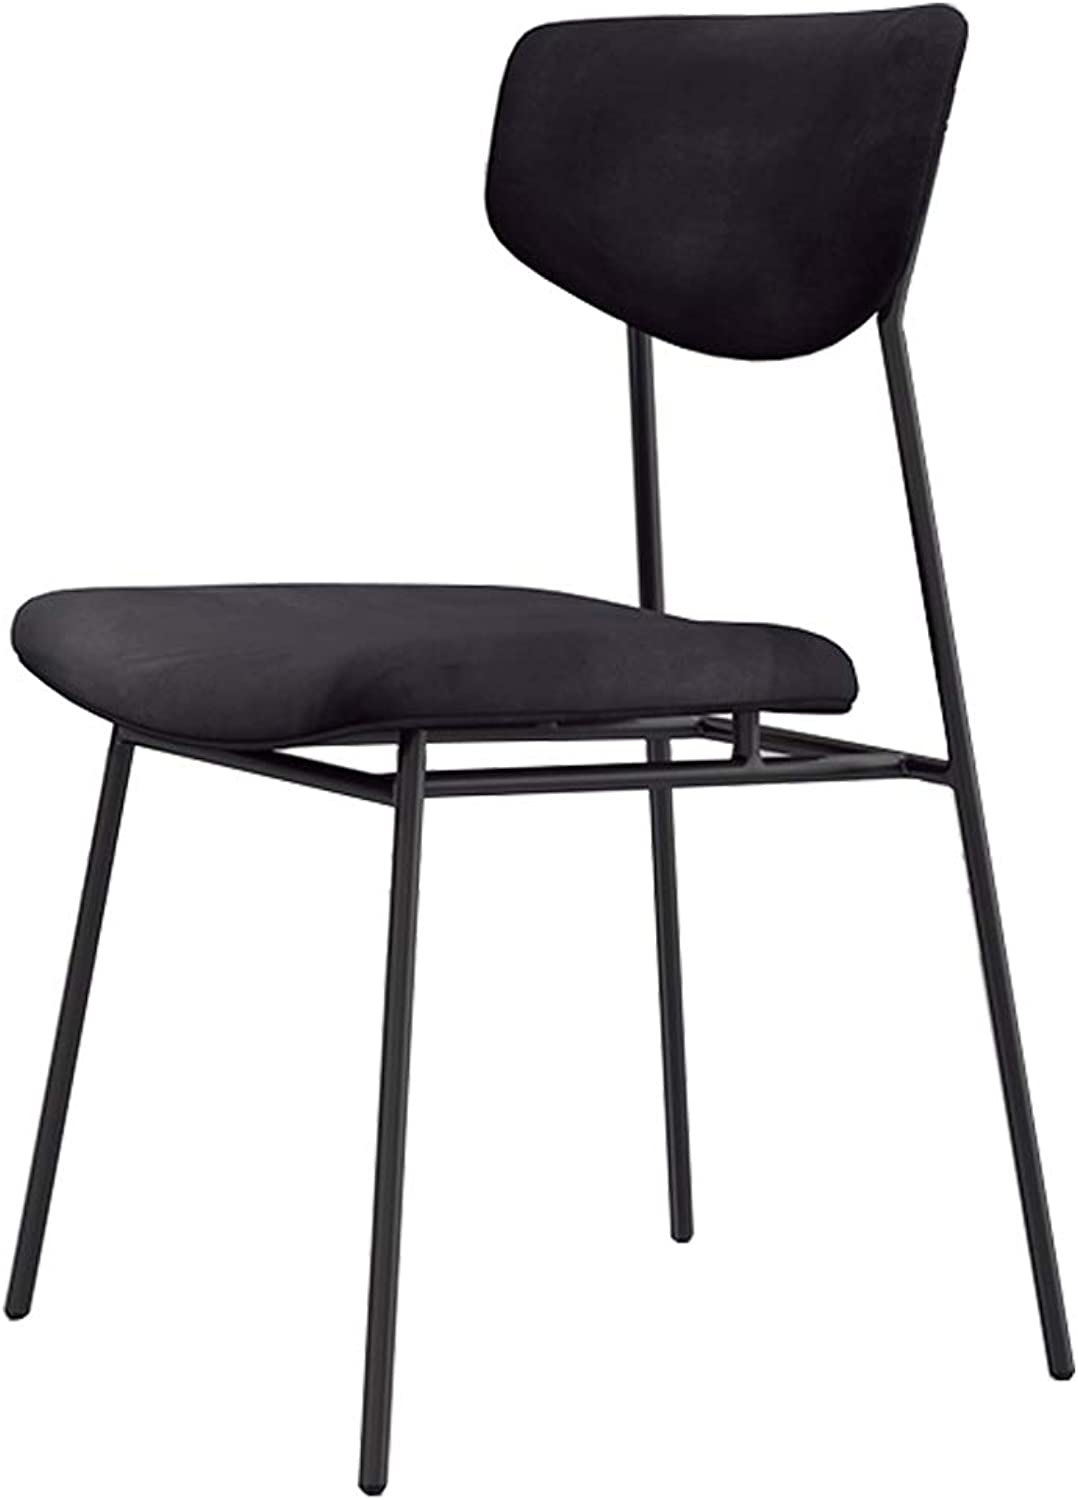 Comfortable Bar Stools for Kids Adults   Seat Height 45cm  Upholstered Dining Chairs with Backrest for Kitchen Pub  Black Velvet Cushion Barstools